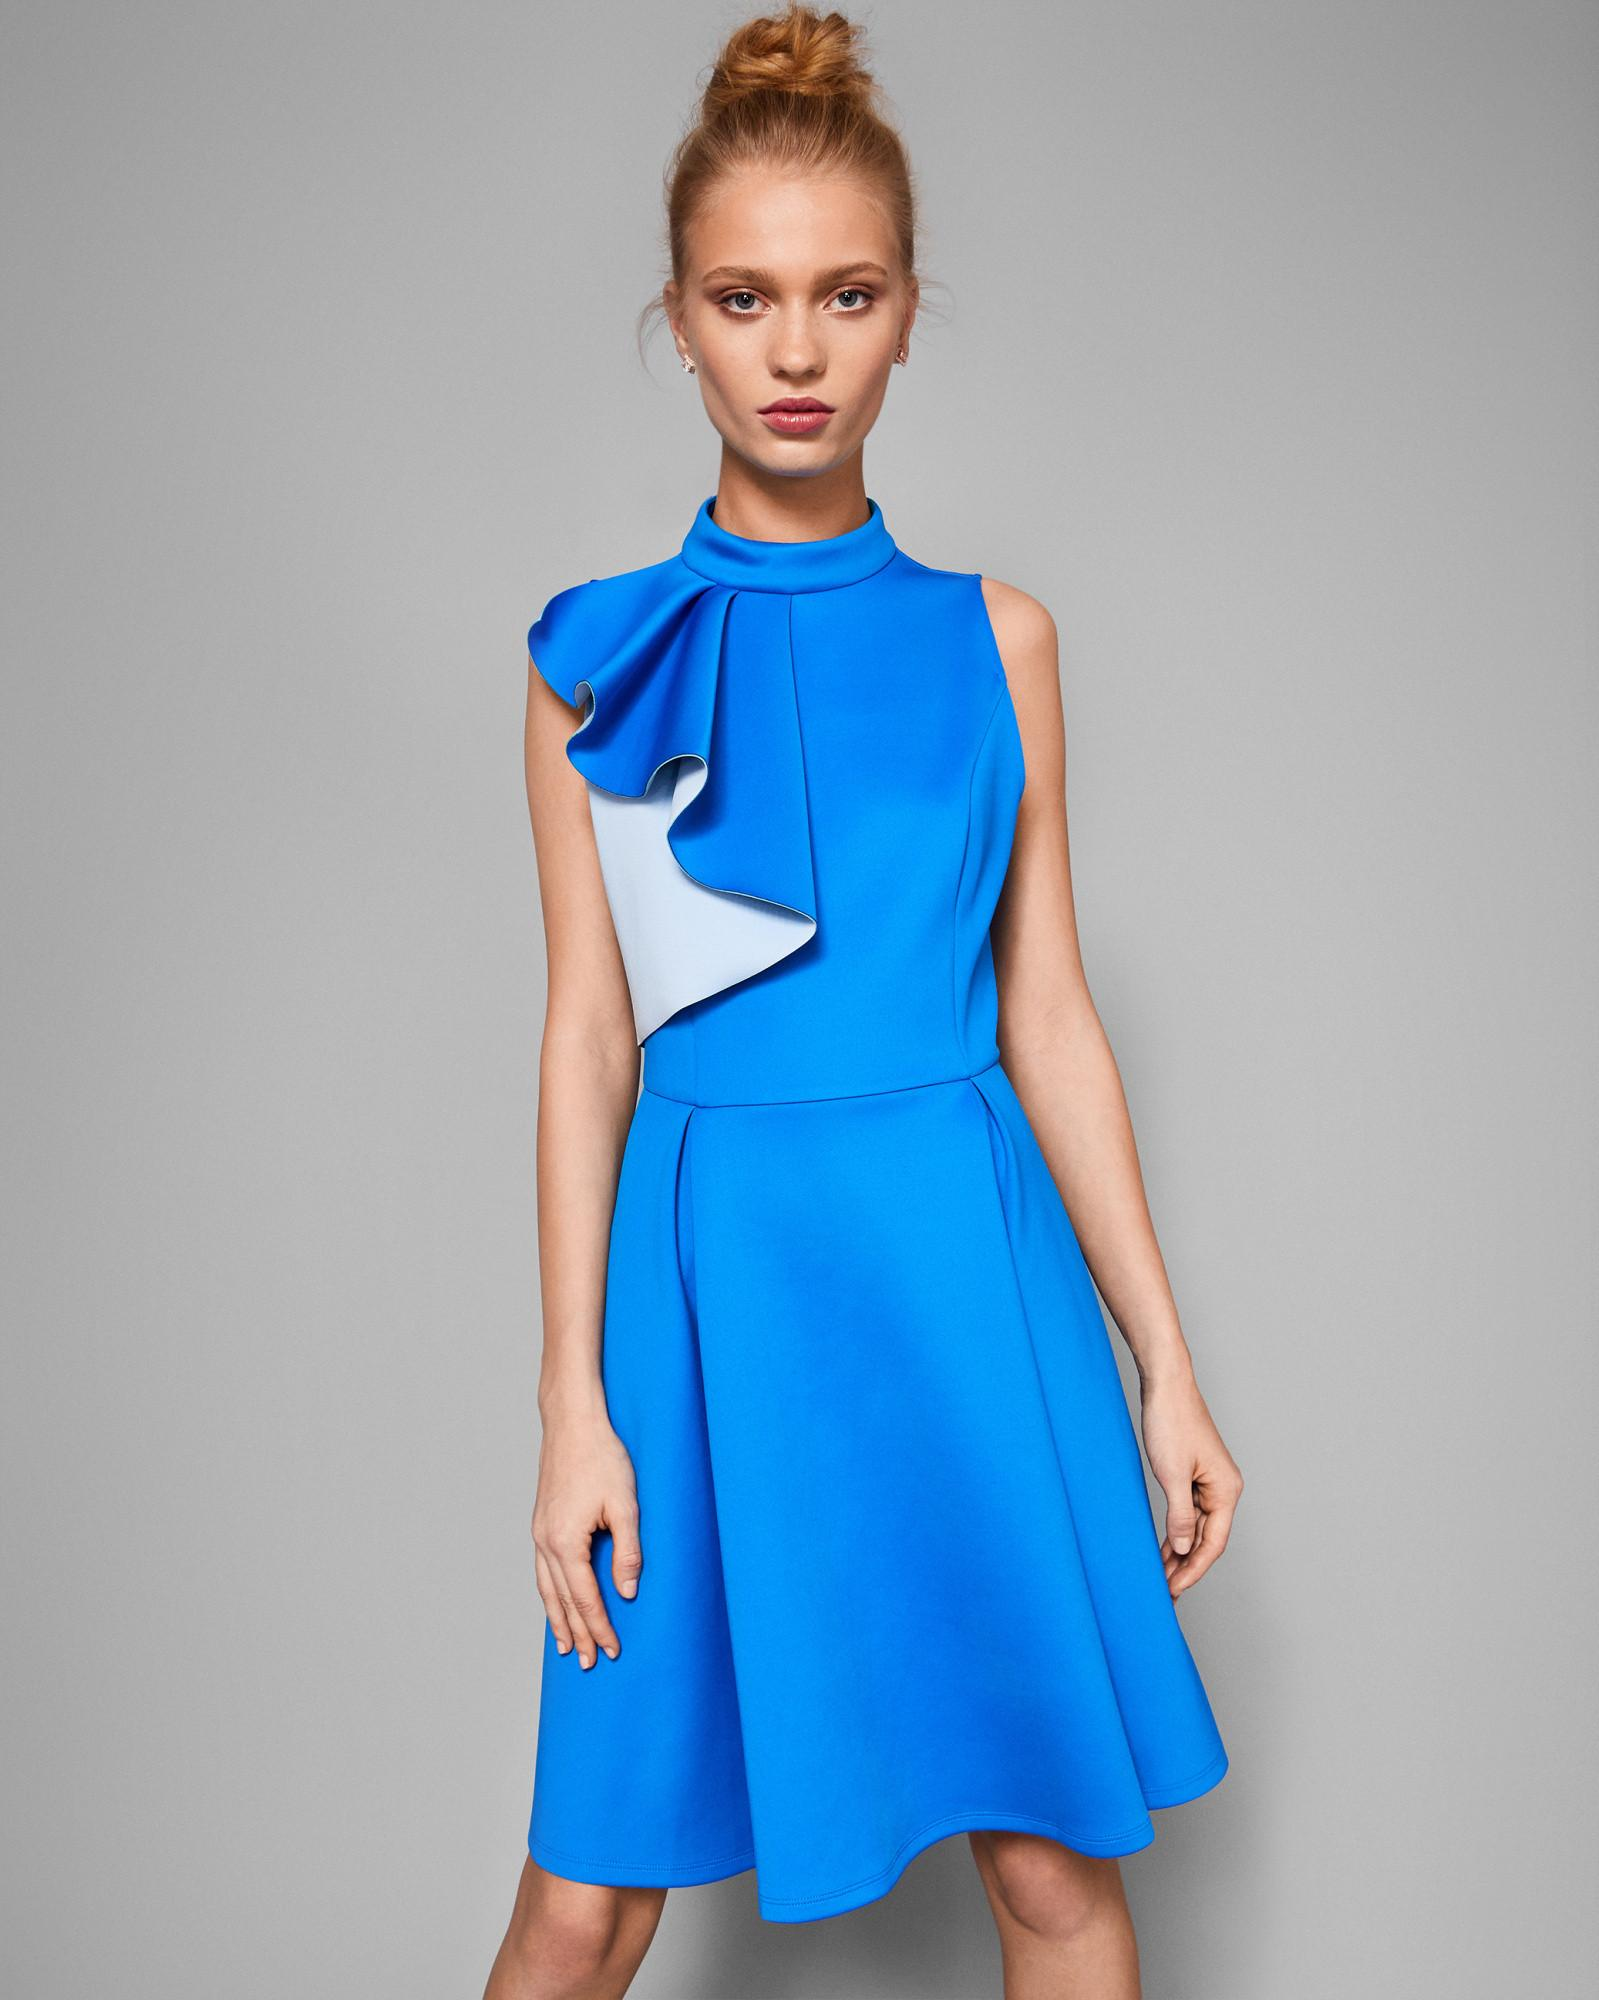 fd6549a196 Ted Baker Ruffle Detail Skater Dress in Blue - Save 40% - Lyst